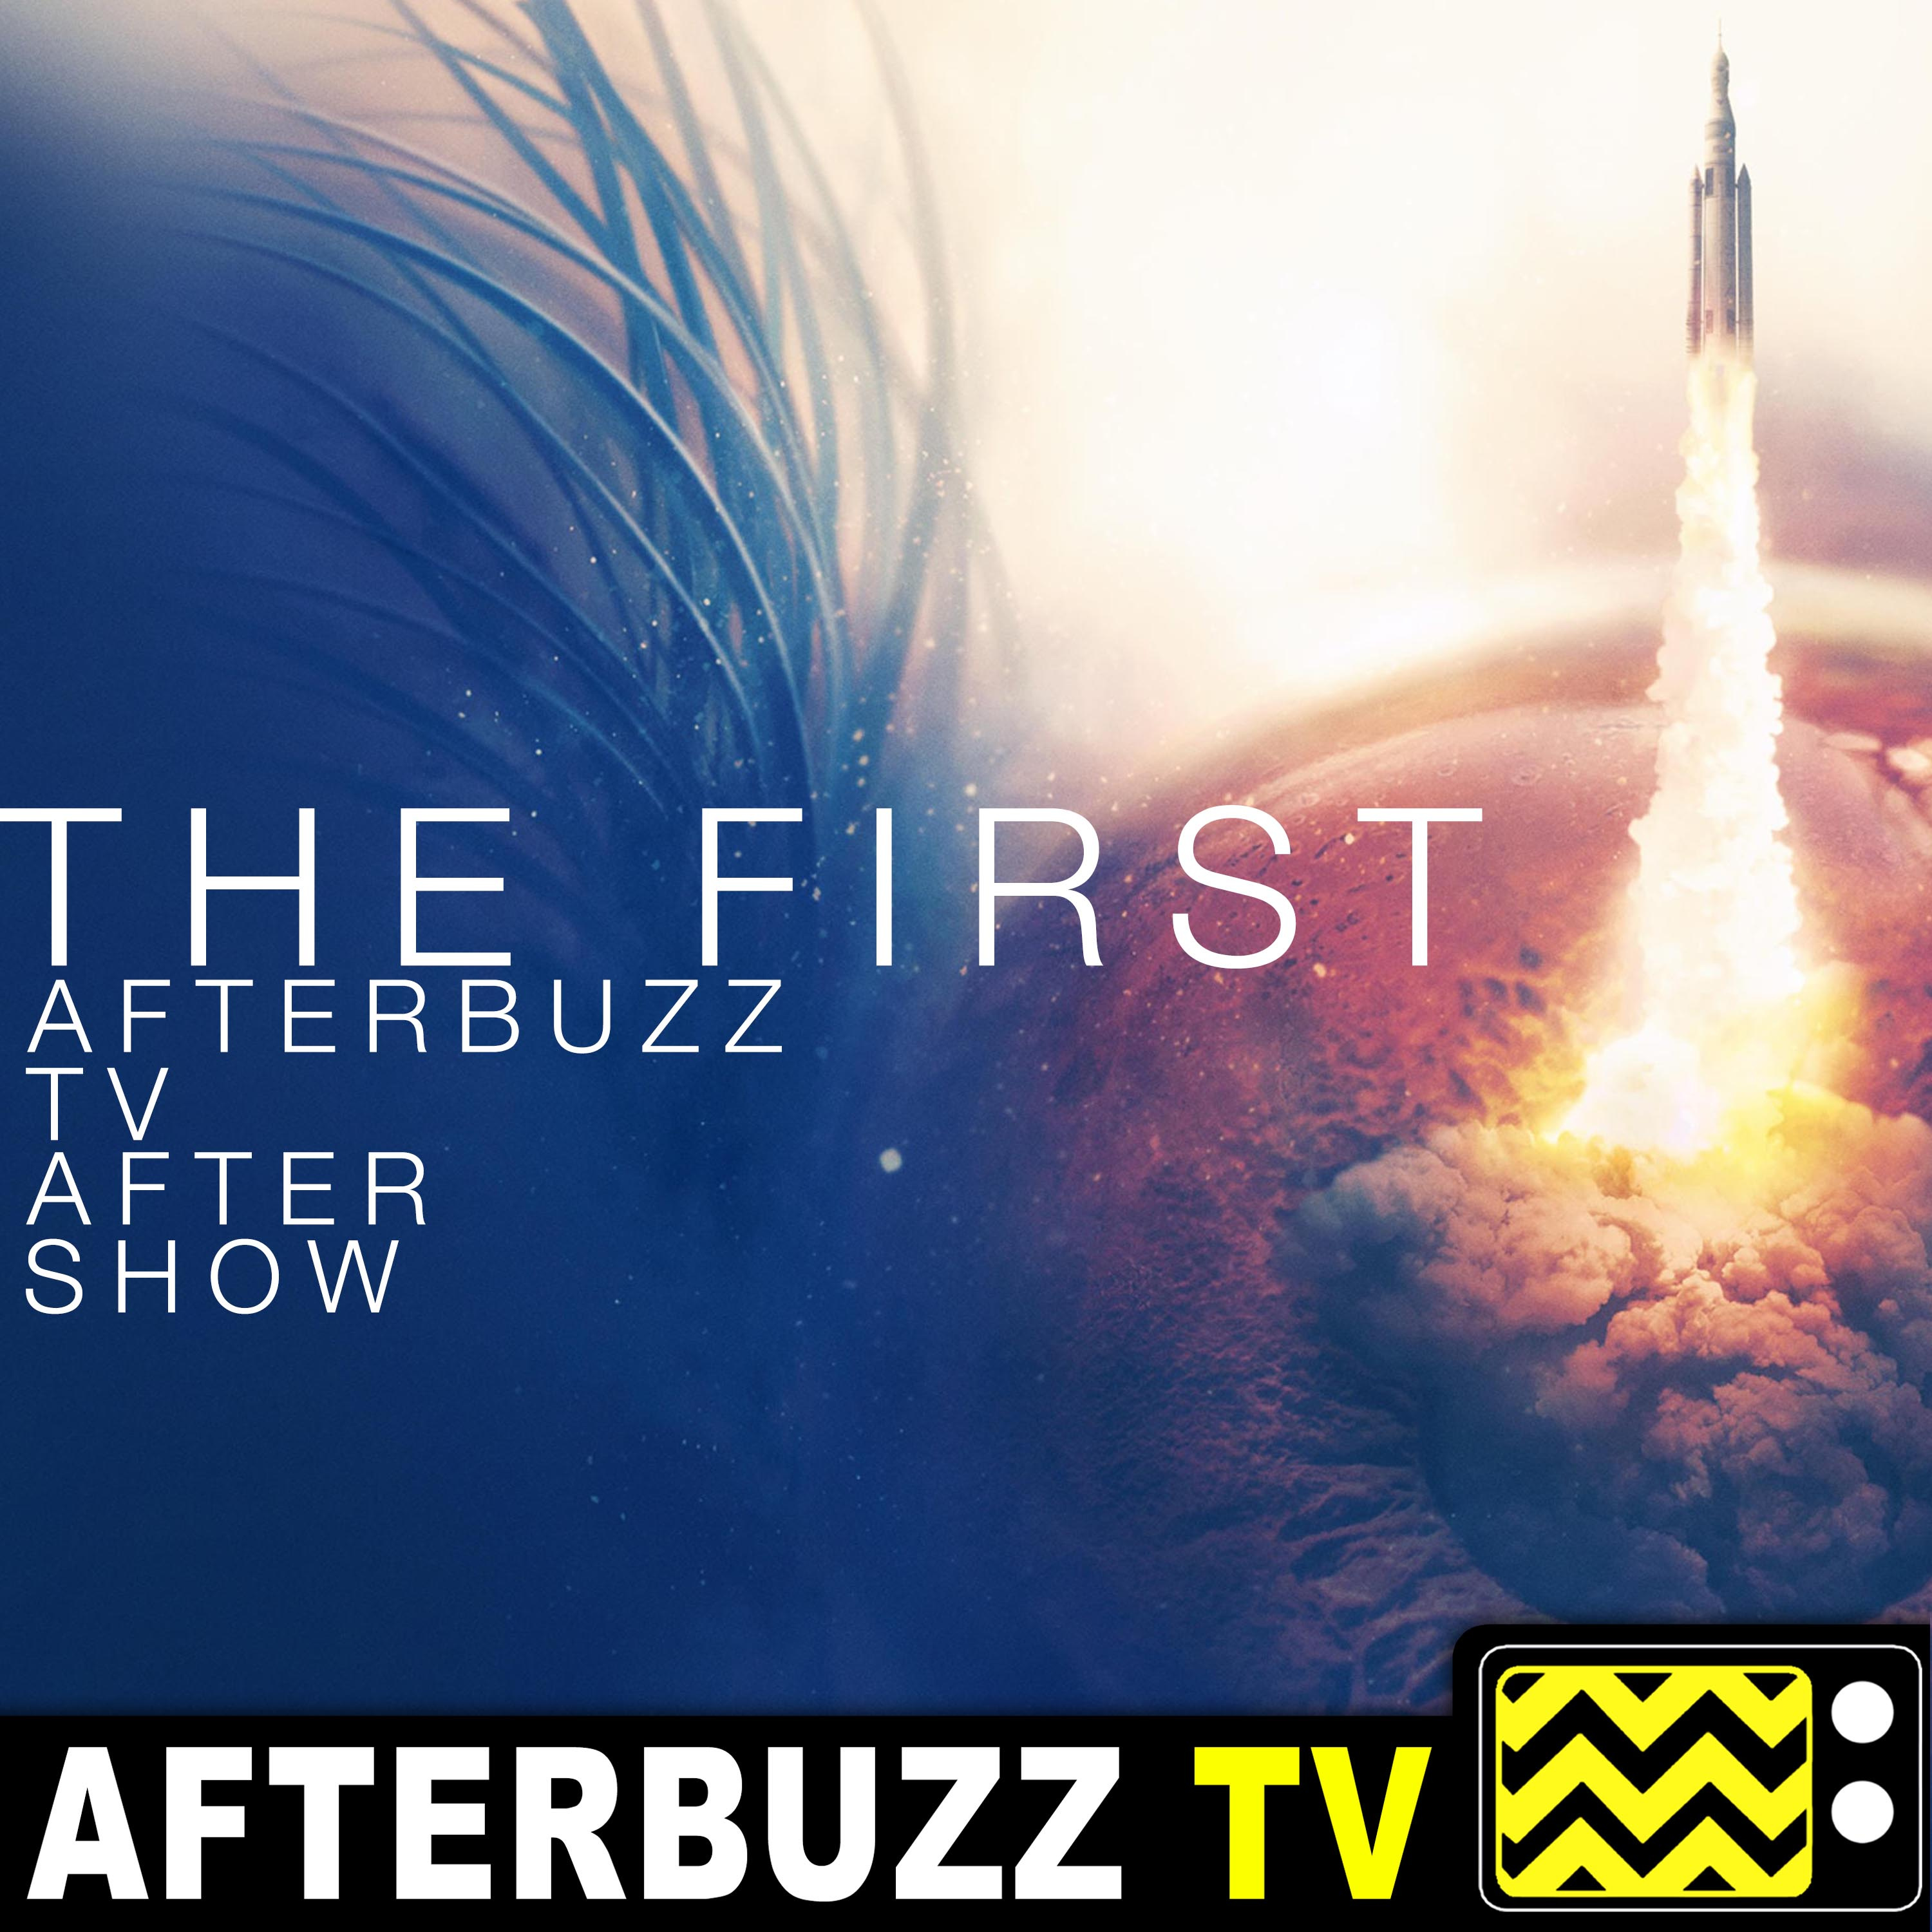 The First Reviews & After Show - AfterBuzz TV